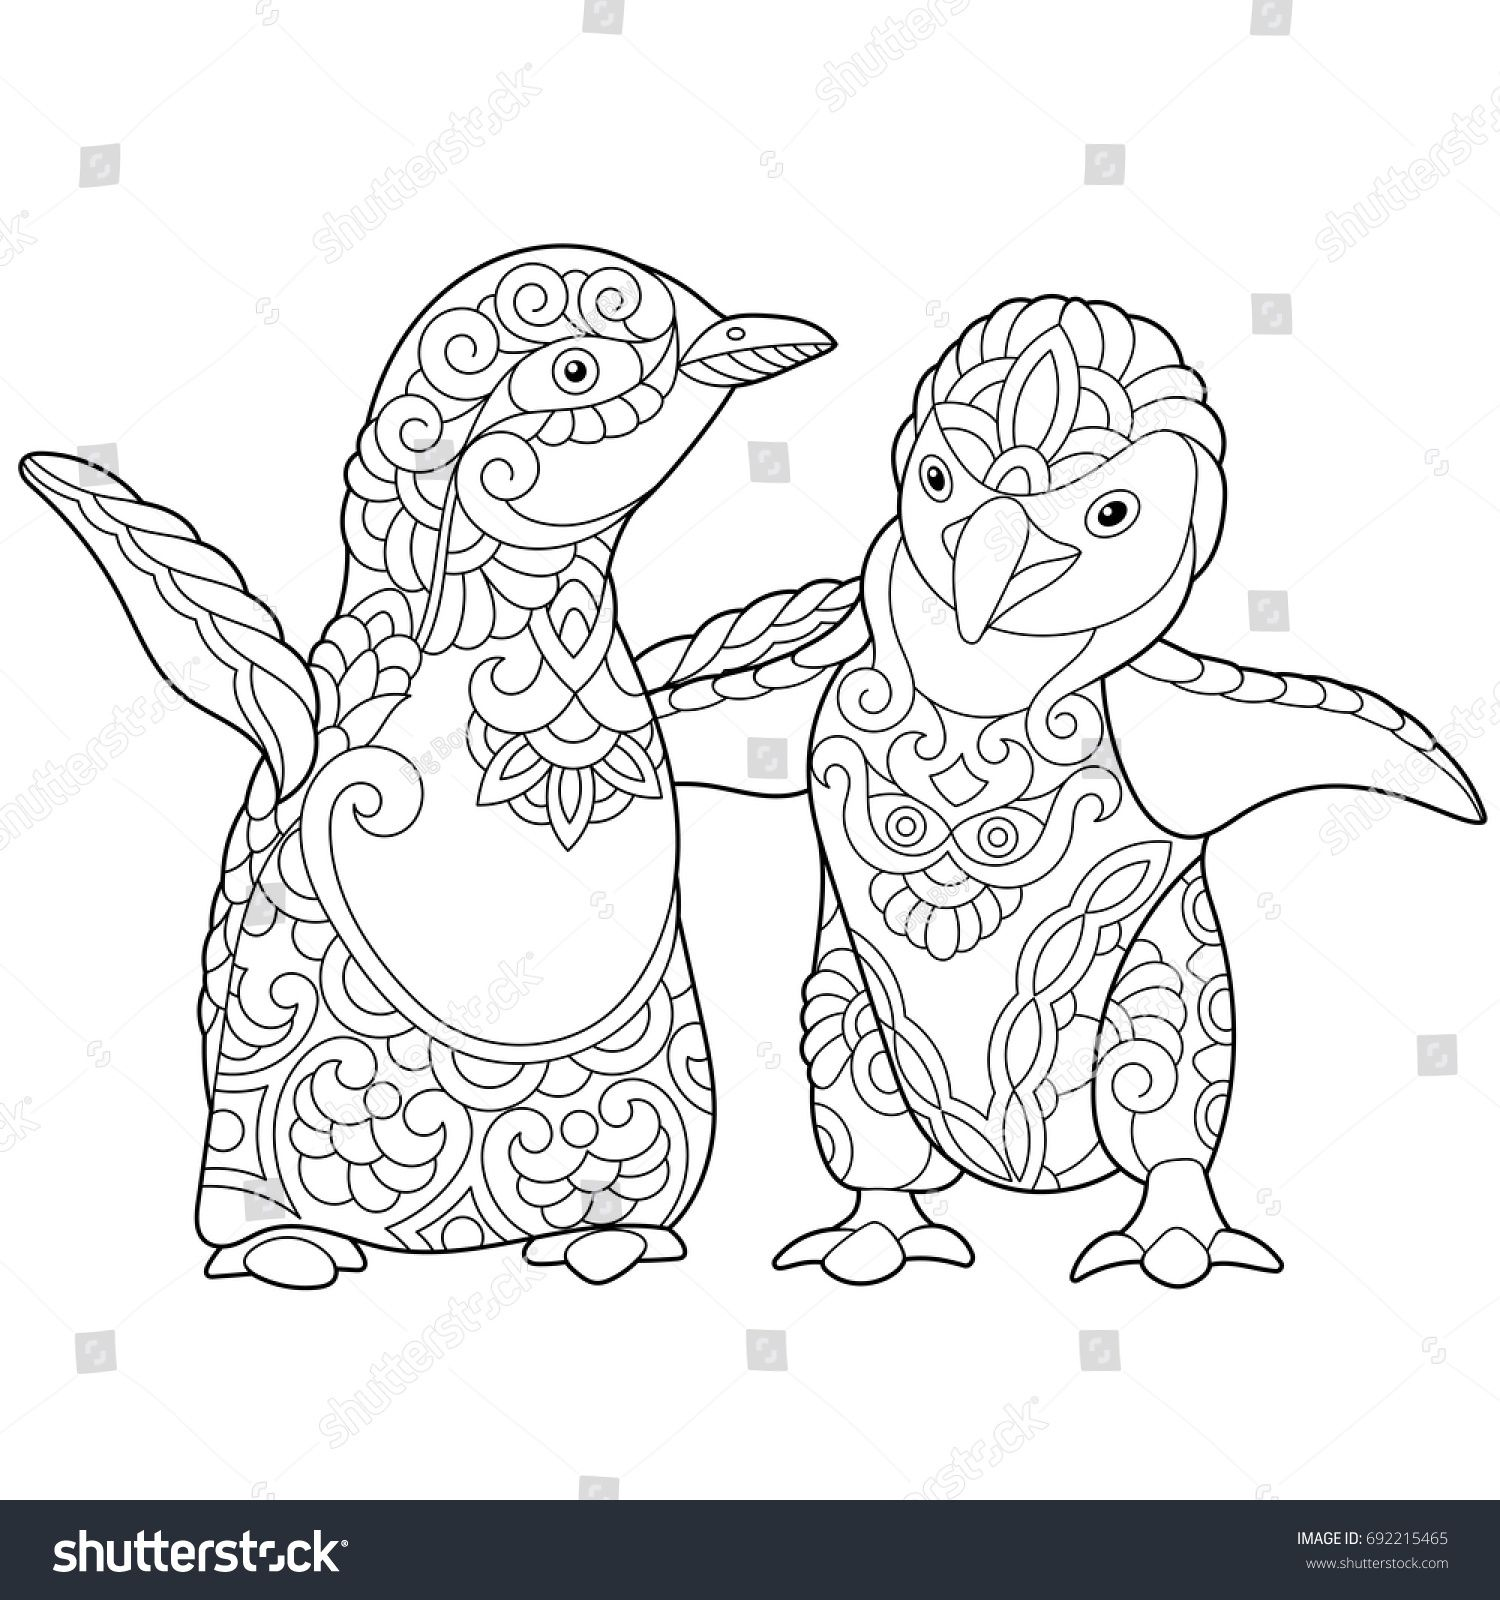 Coloring page of young emperor penguins, isolated on white